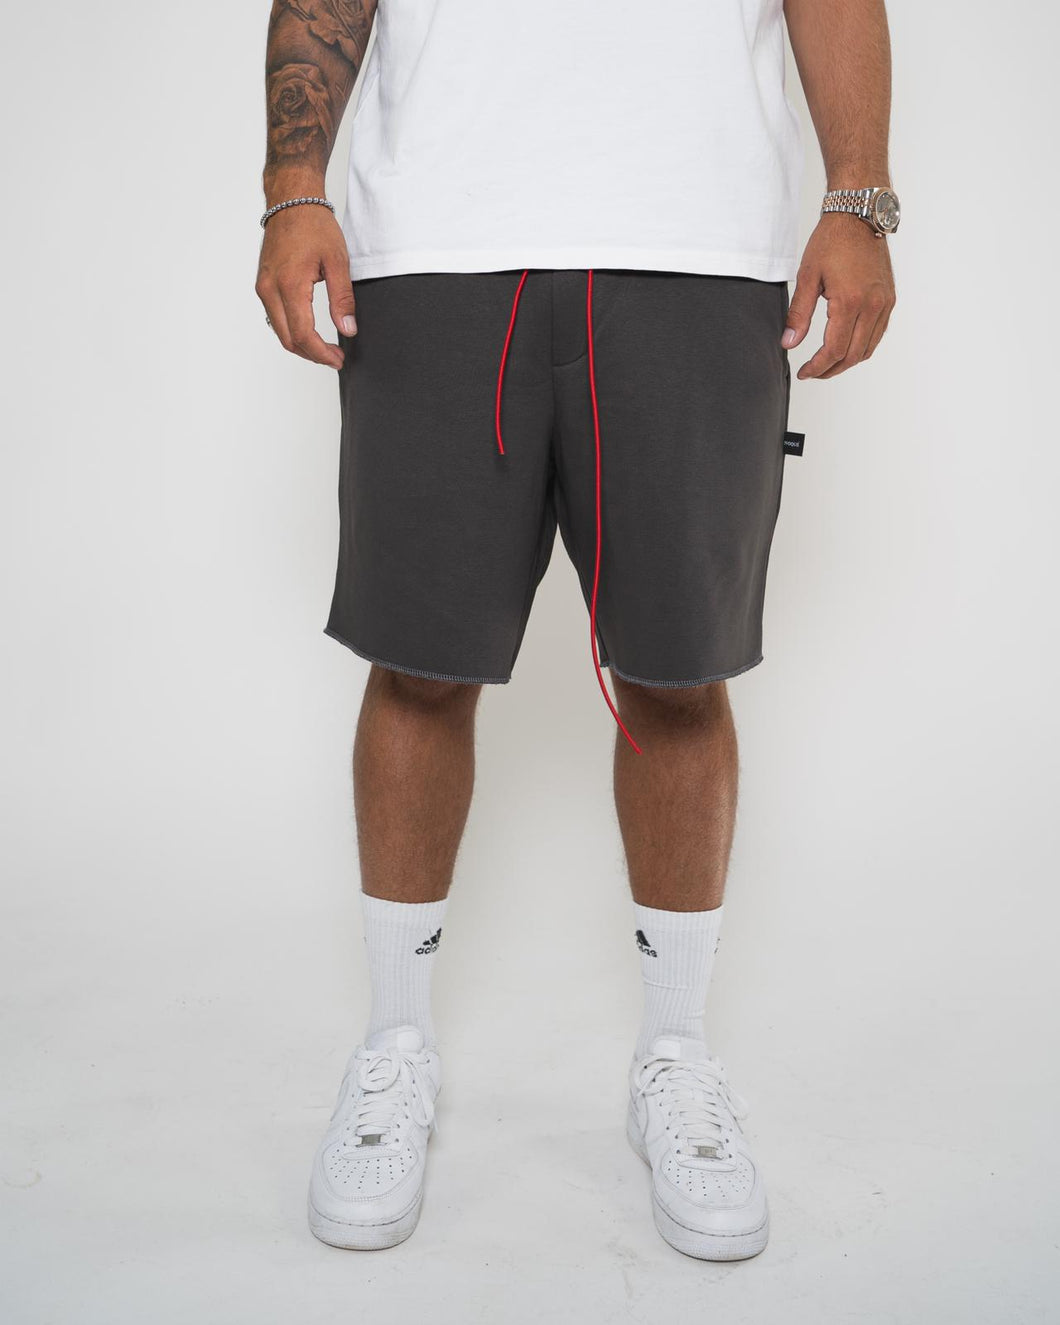 Ivoqué Shorts Grey / Red